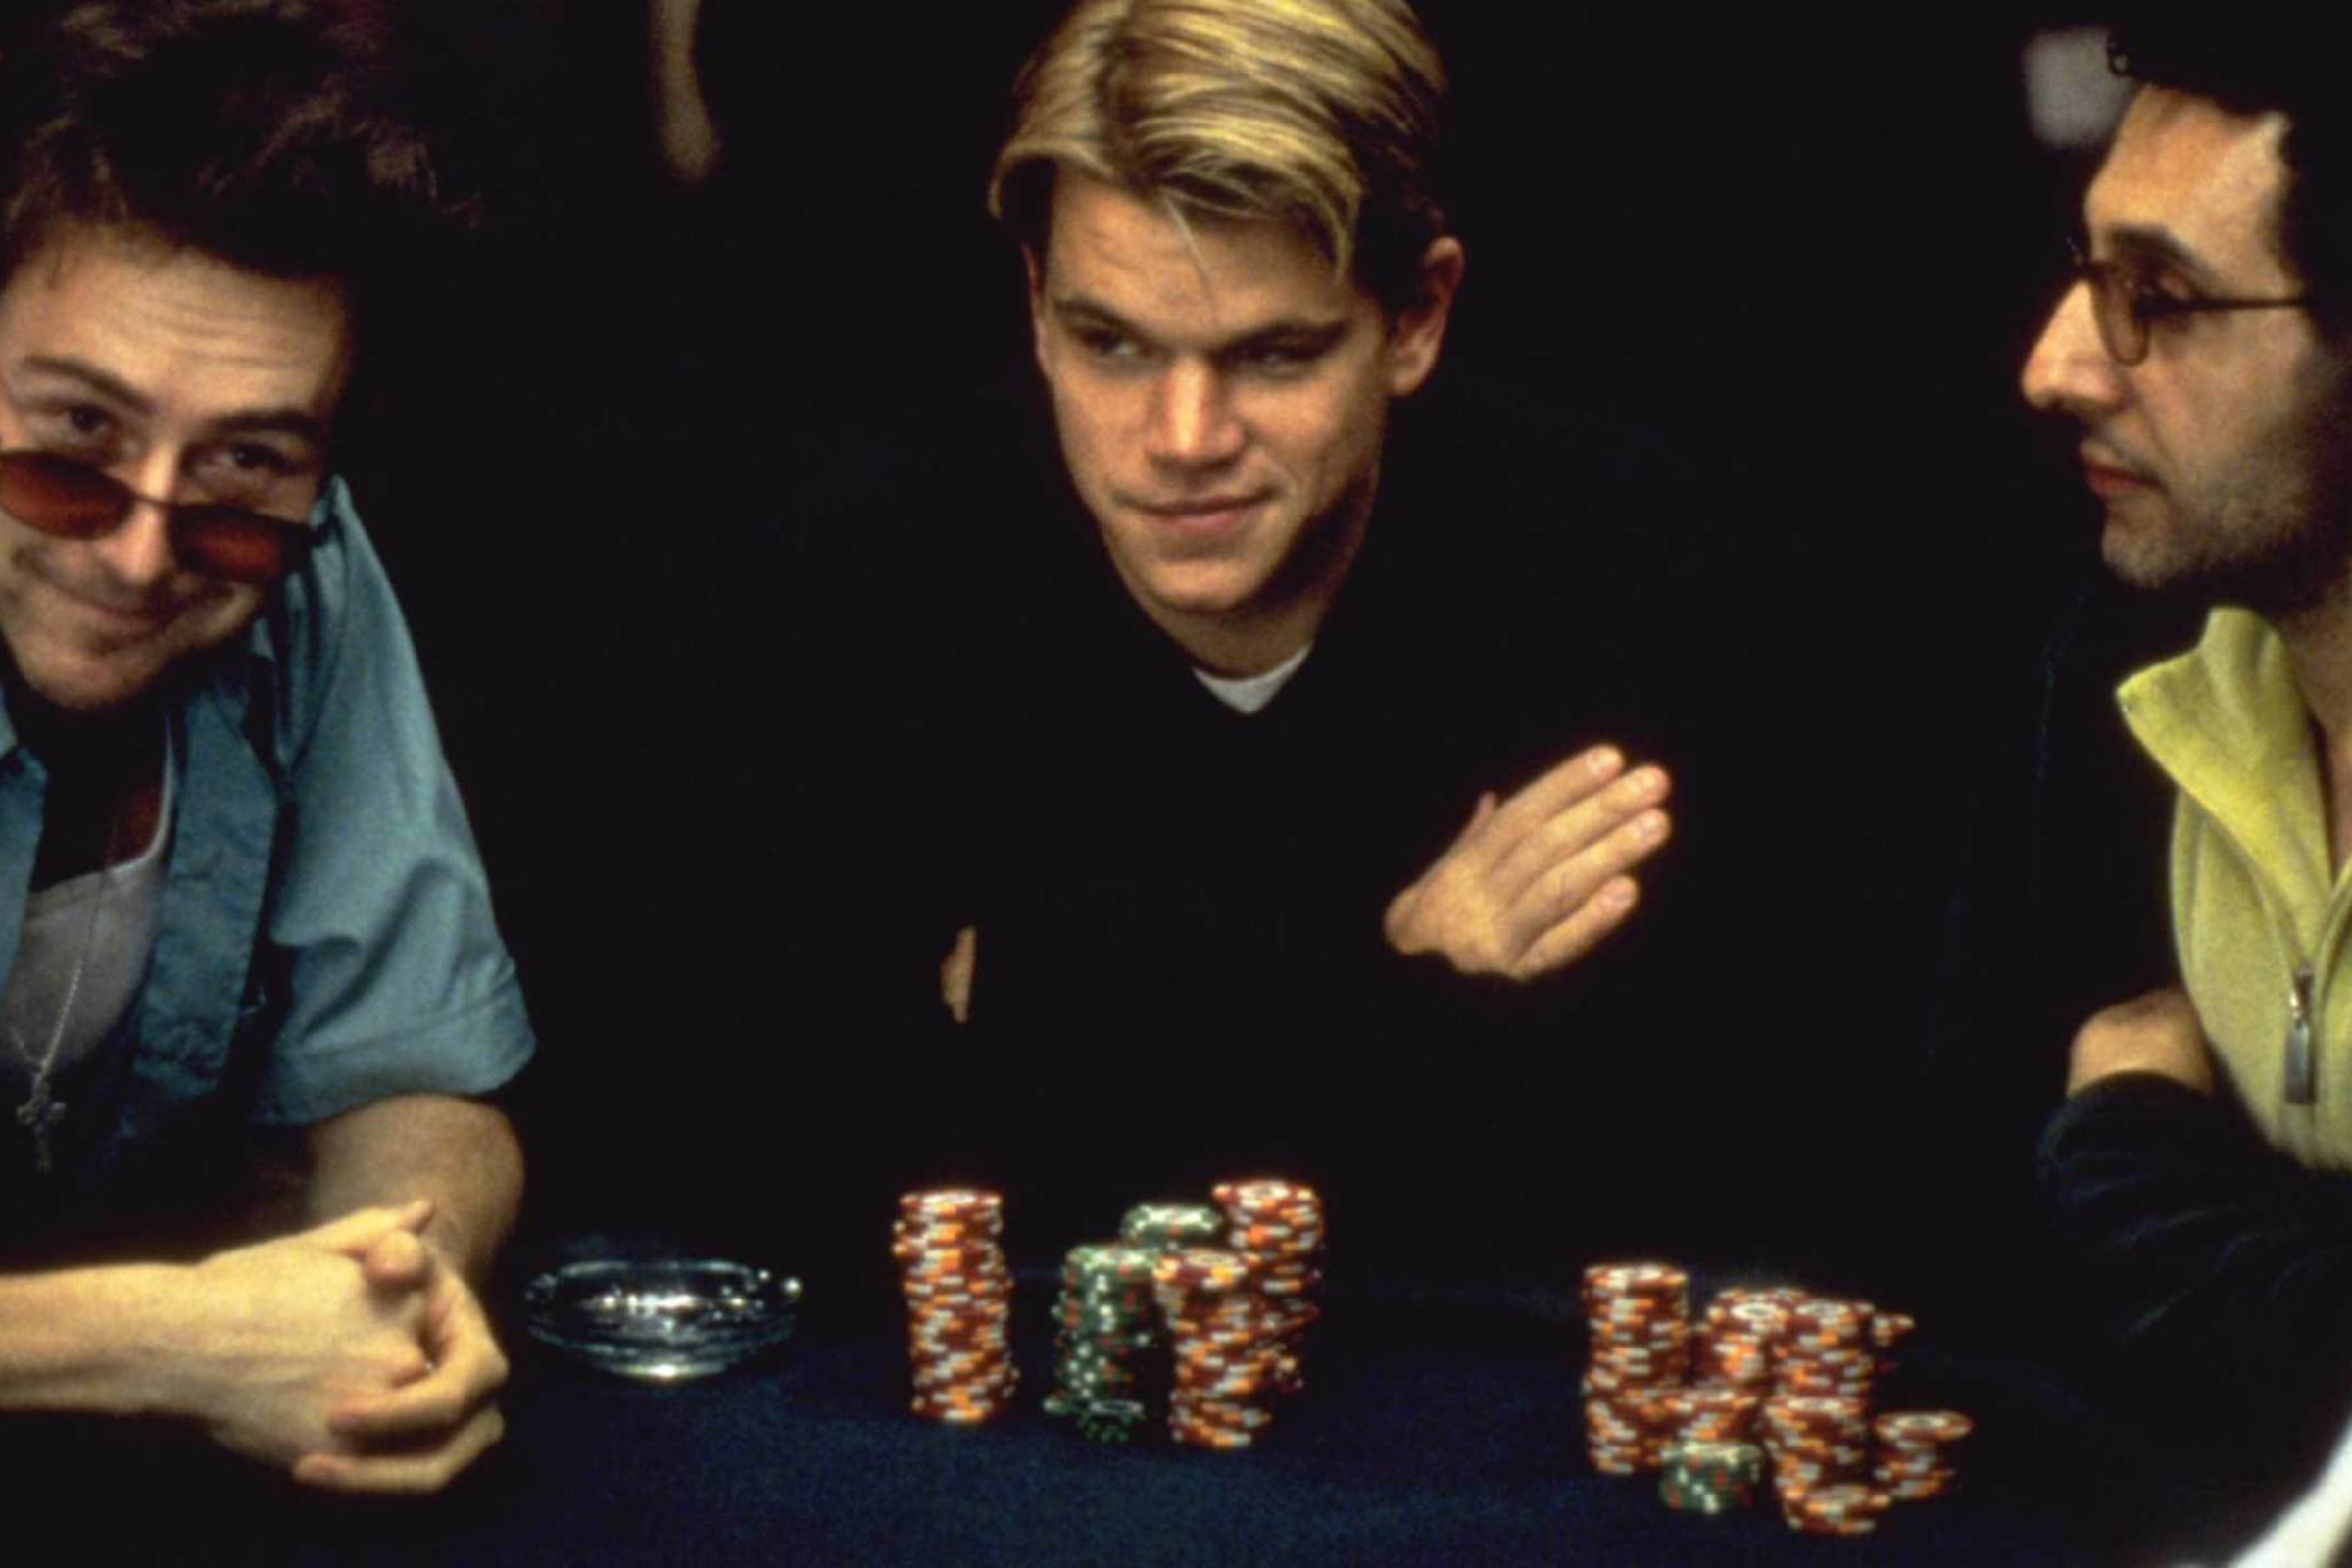 'Rounders' movie sequel poker